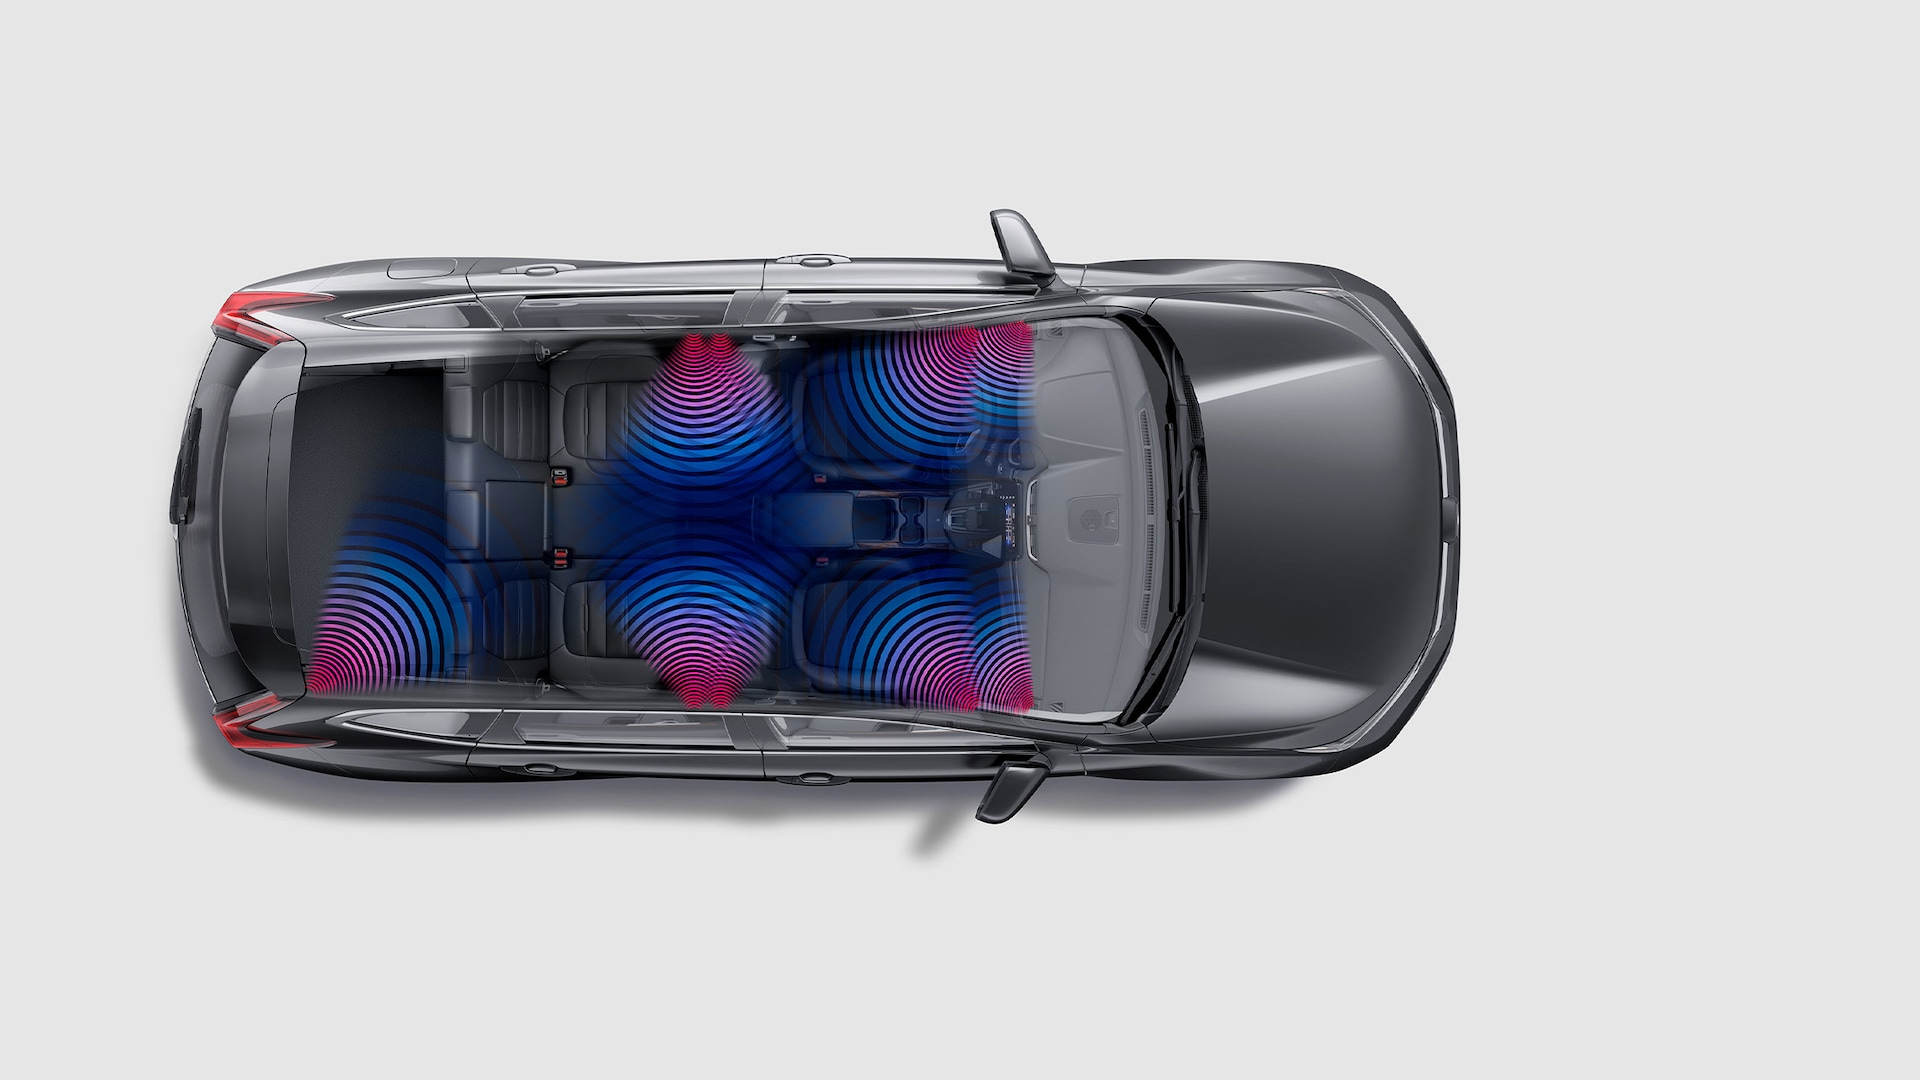 Overhead cutaway view of the 2021 Honda CR-V with illustration showing speaker locations.